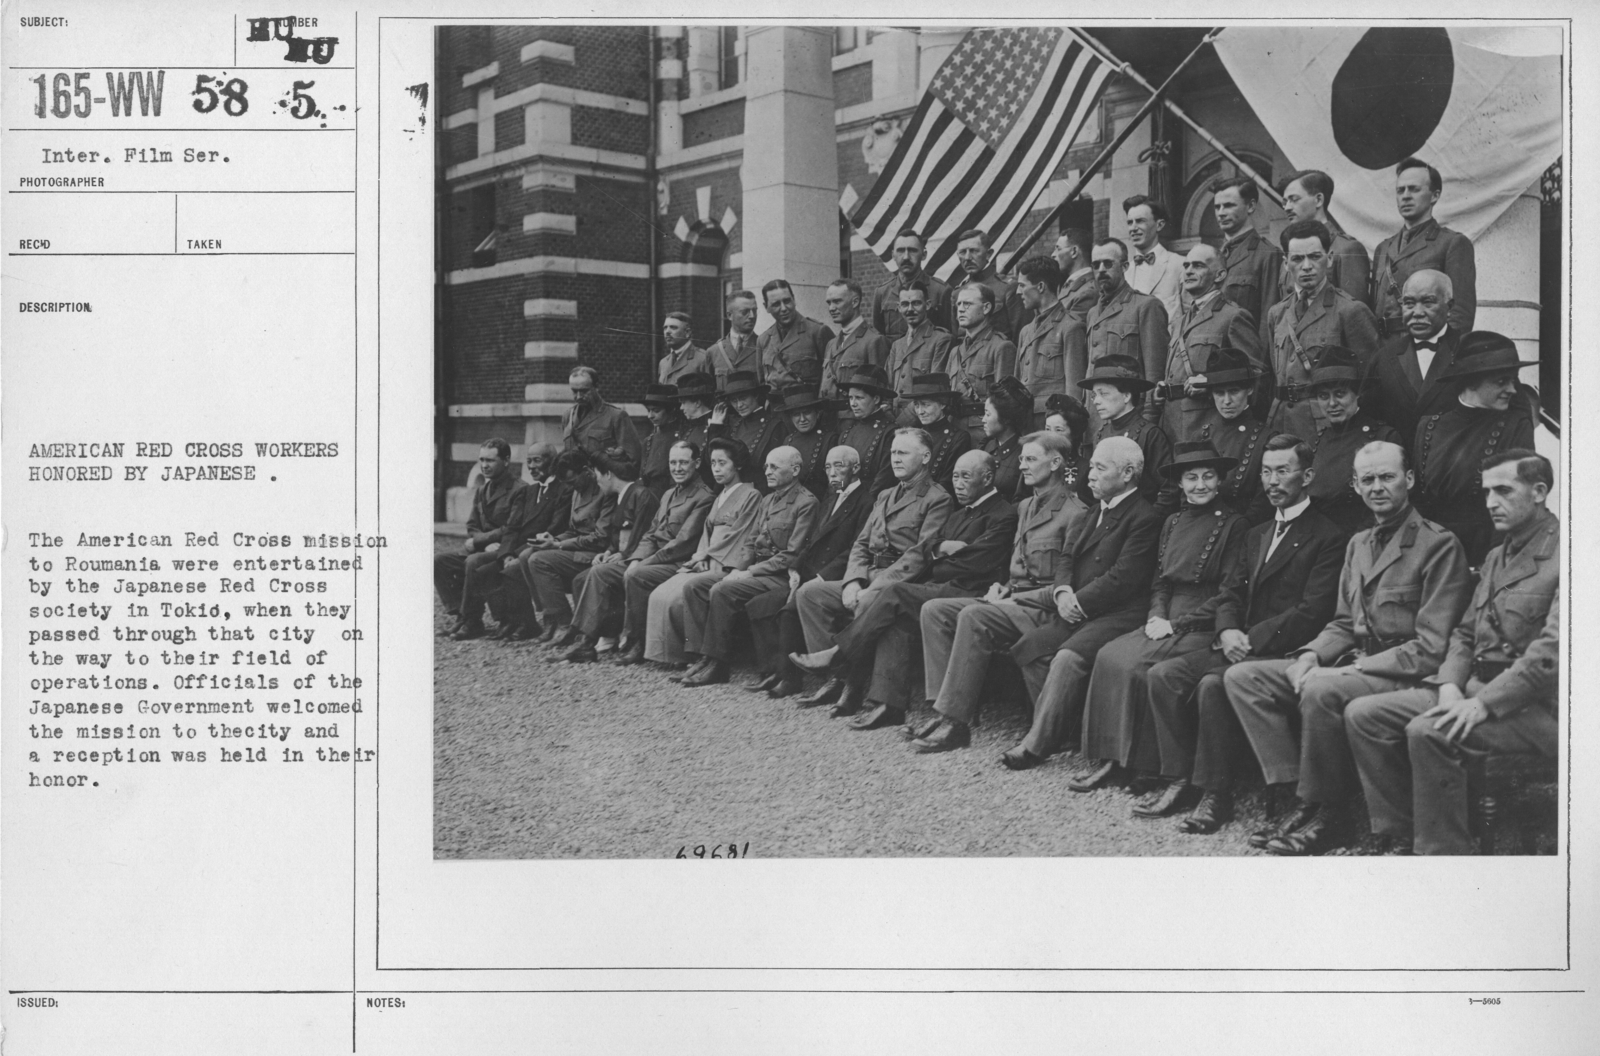 American Red Cross - Groups - American Red Cross workers honored by Japanese. The American Red Cross mission to Roumania were entertained by the Japanese Red Cross society in Tokio, when they passed through that city on the way to their field of operations. Officials of the Japanese Government welcomed the mission tot eh city and a reception was held in their honor